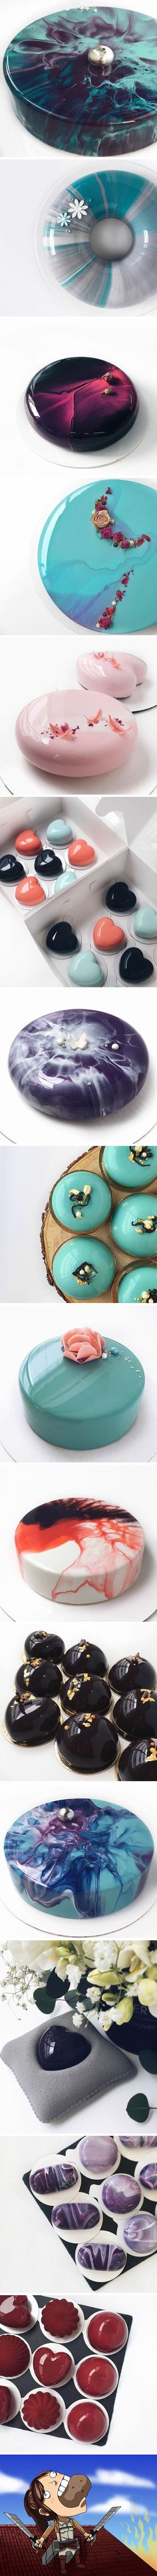 These Mirror Glazed Mousse Cakes Are Just Too Perfect To Be Eaten